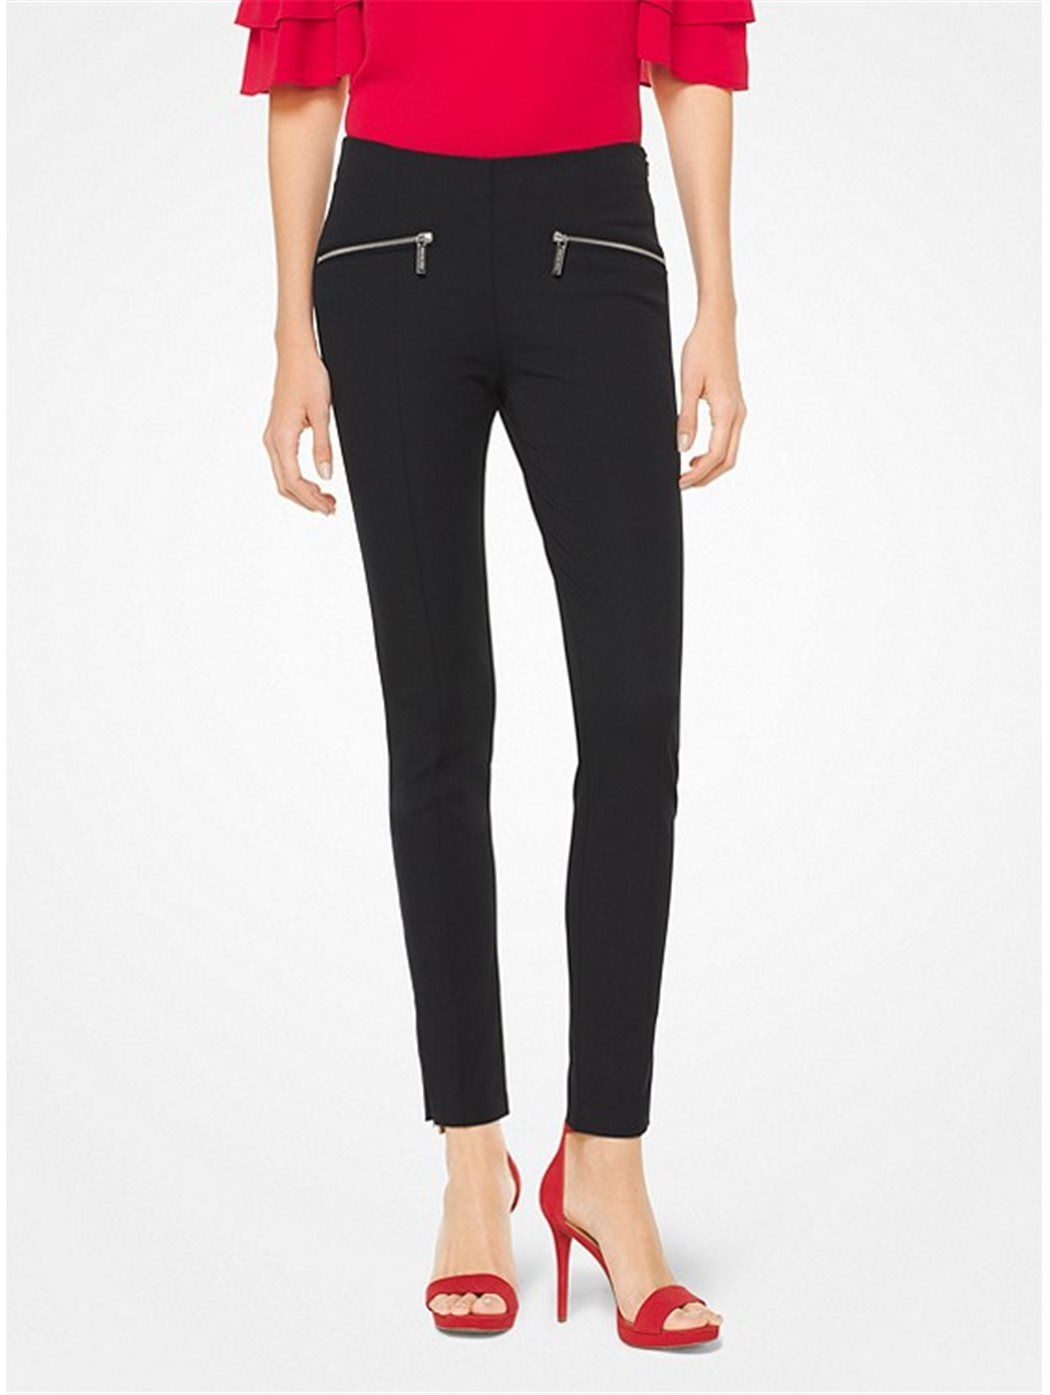 MICHAEL KORS MS83GZ 001-BLACK PANTALONI